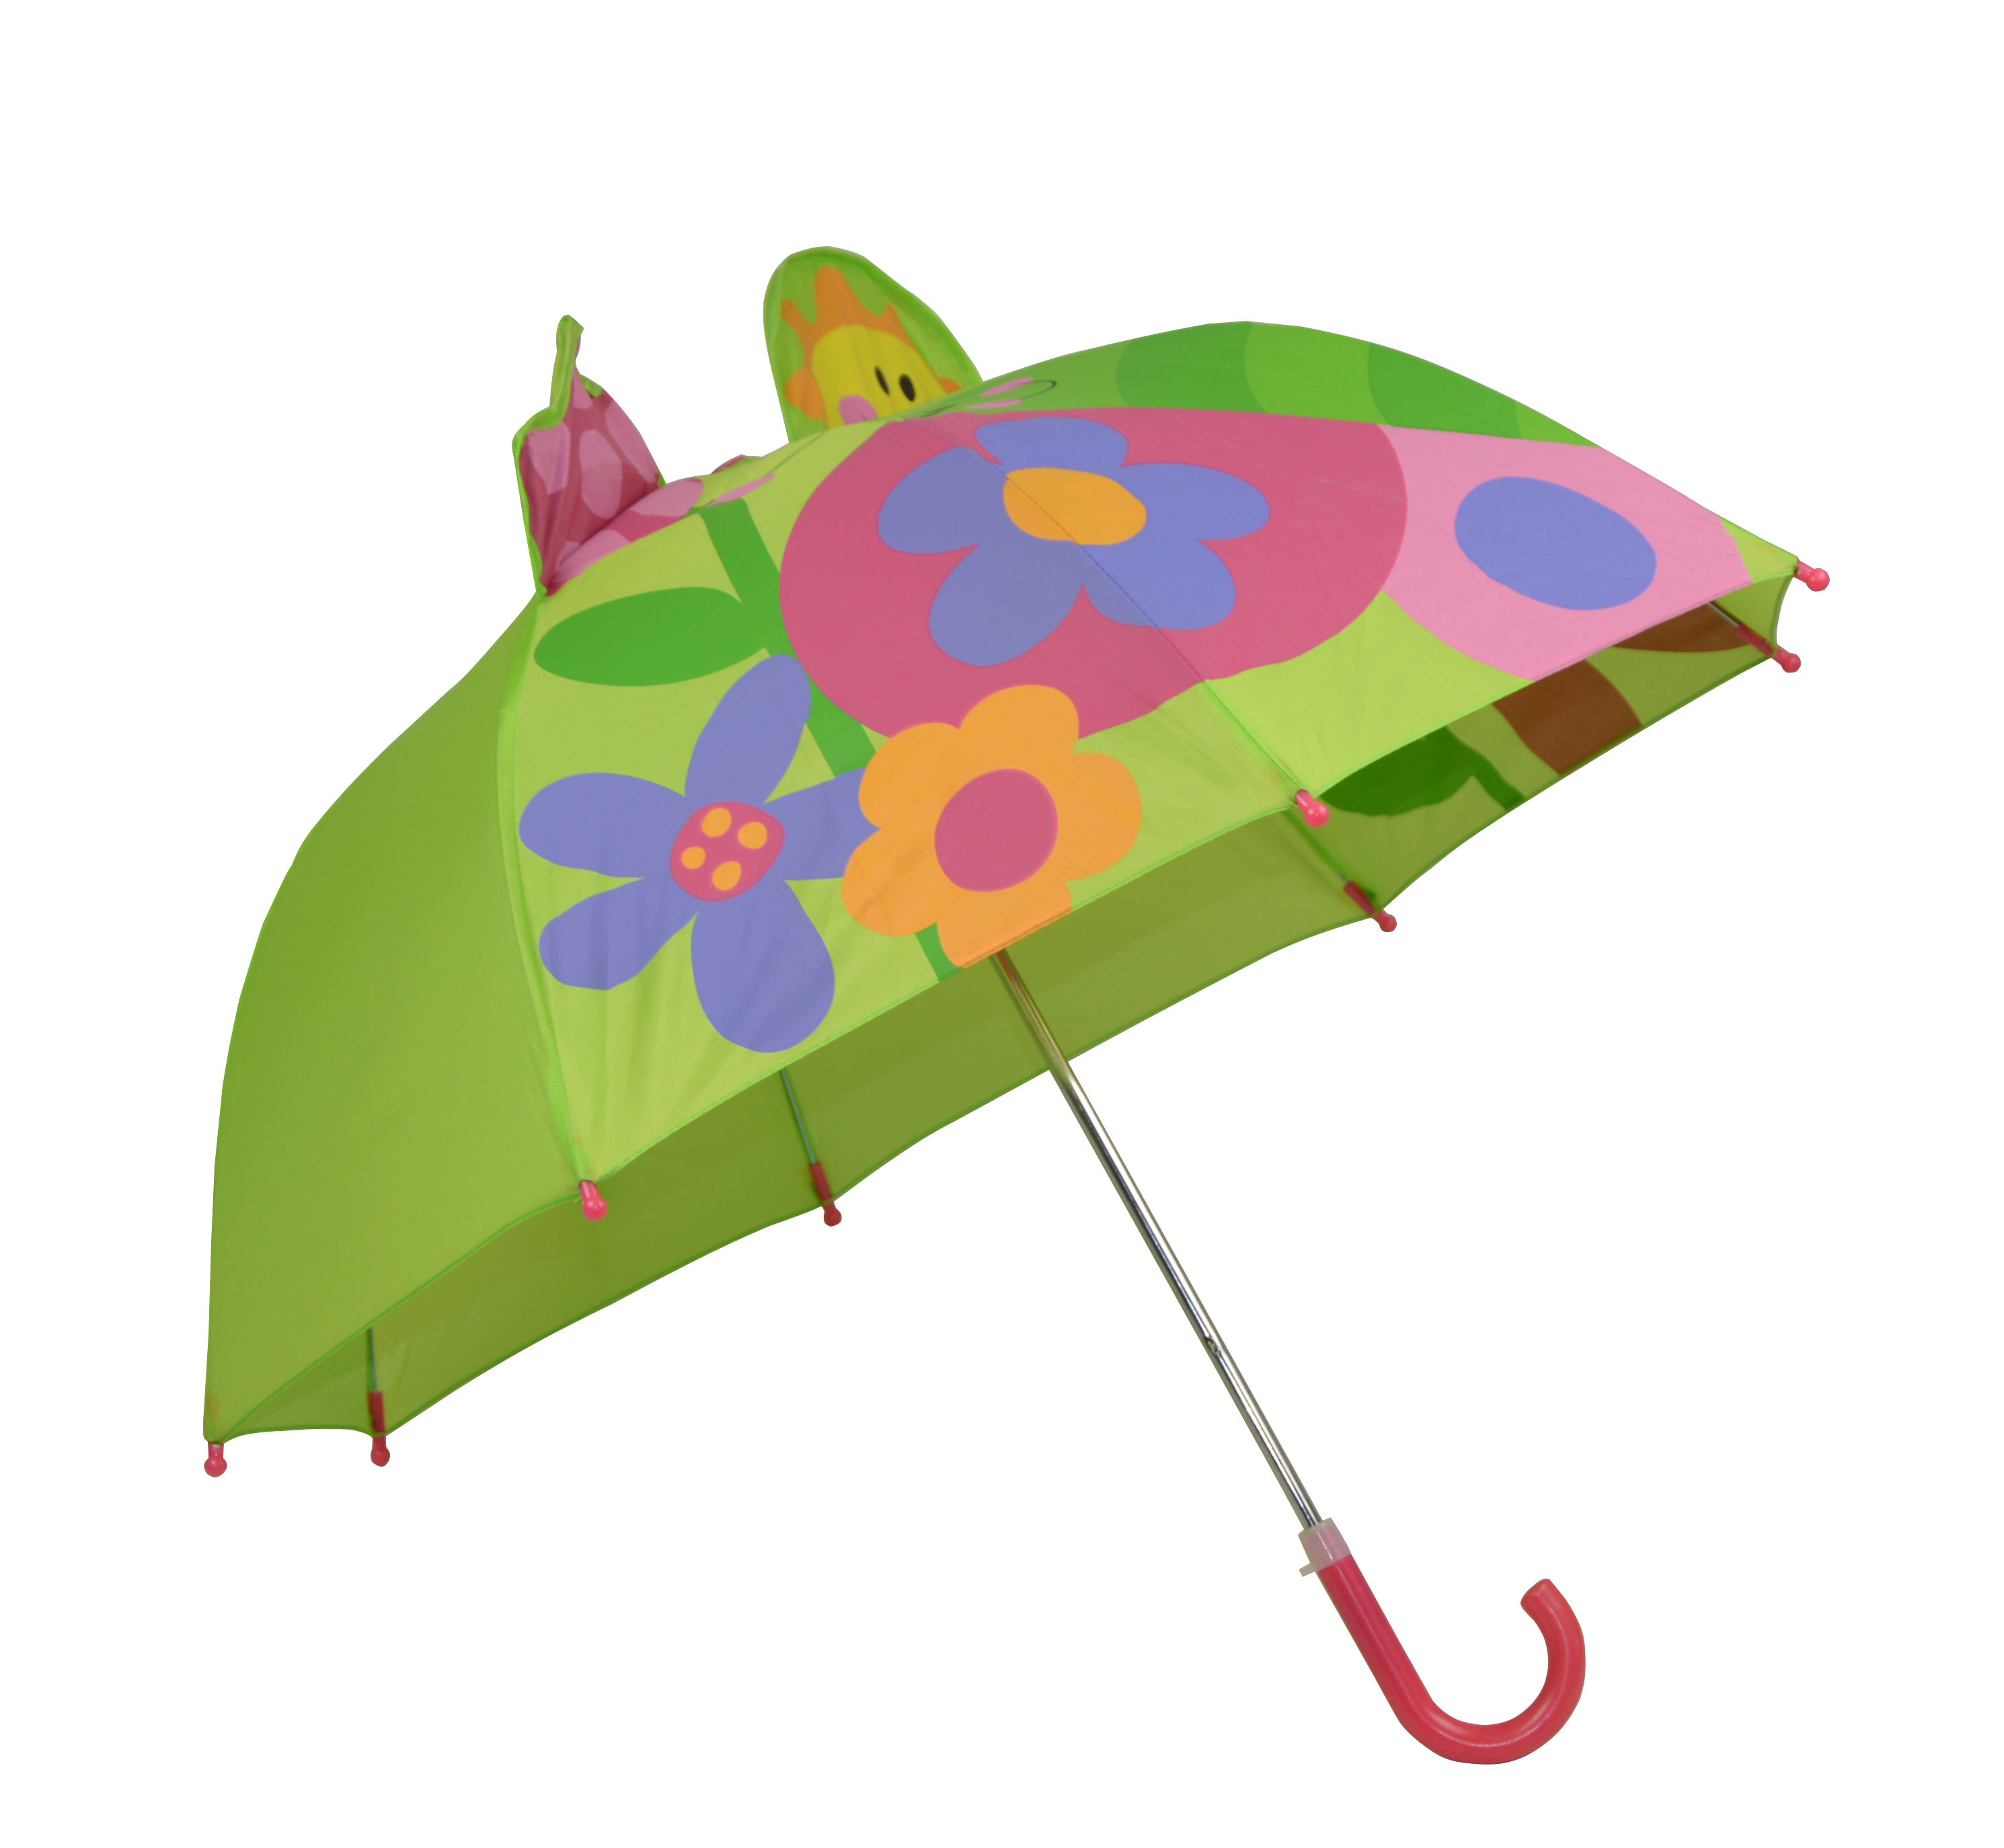 High Quality Premium Small Promotional Child Umbrella Kid Garden Umbrella